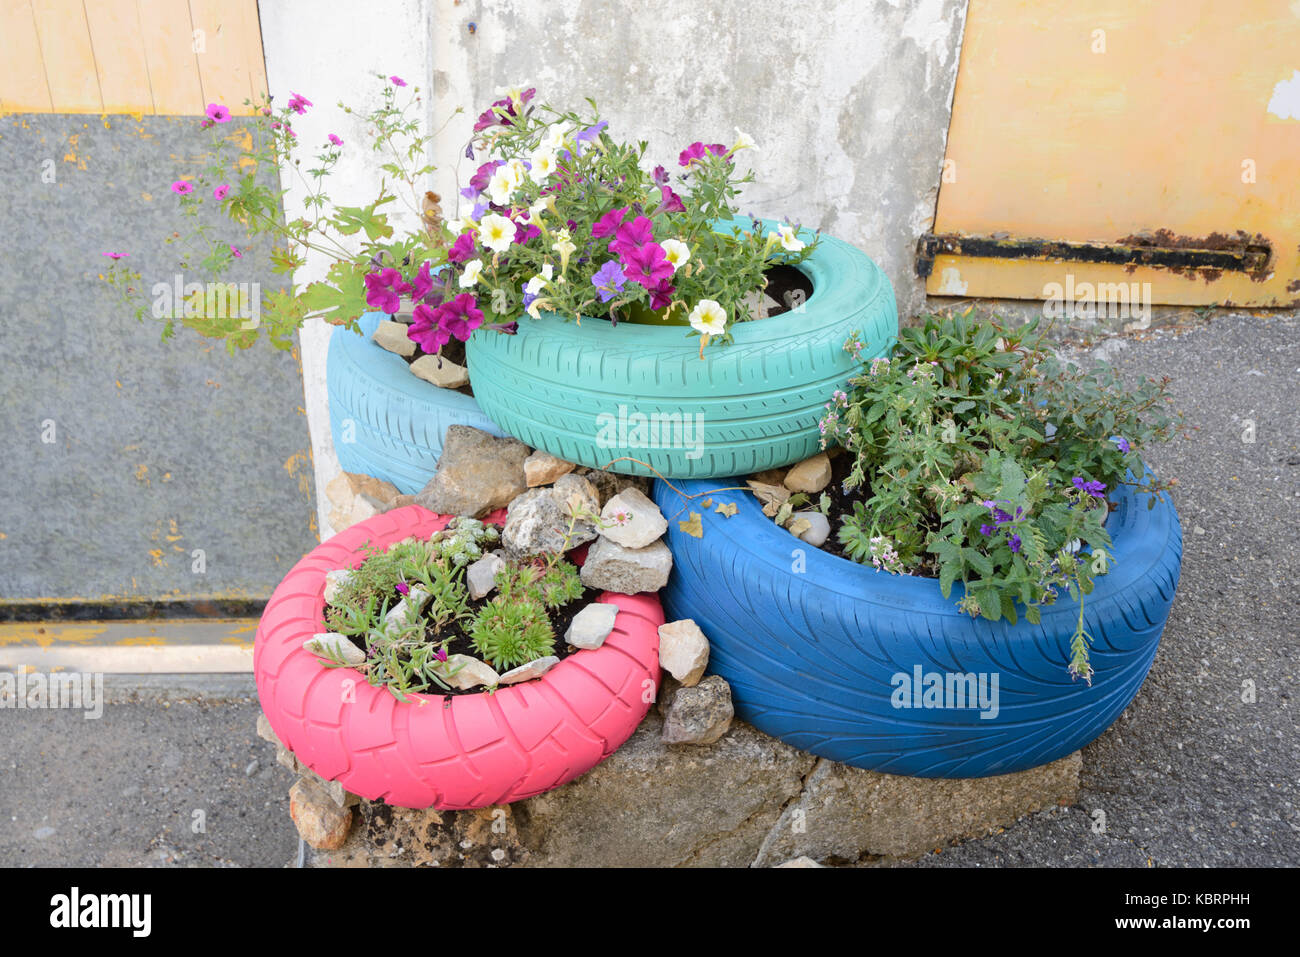 childhood for safe planters what is specifically natural that painting paint be durable learning on of painted planter have initiative early do used lo kiddie tire type any tips you can and